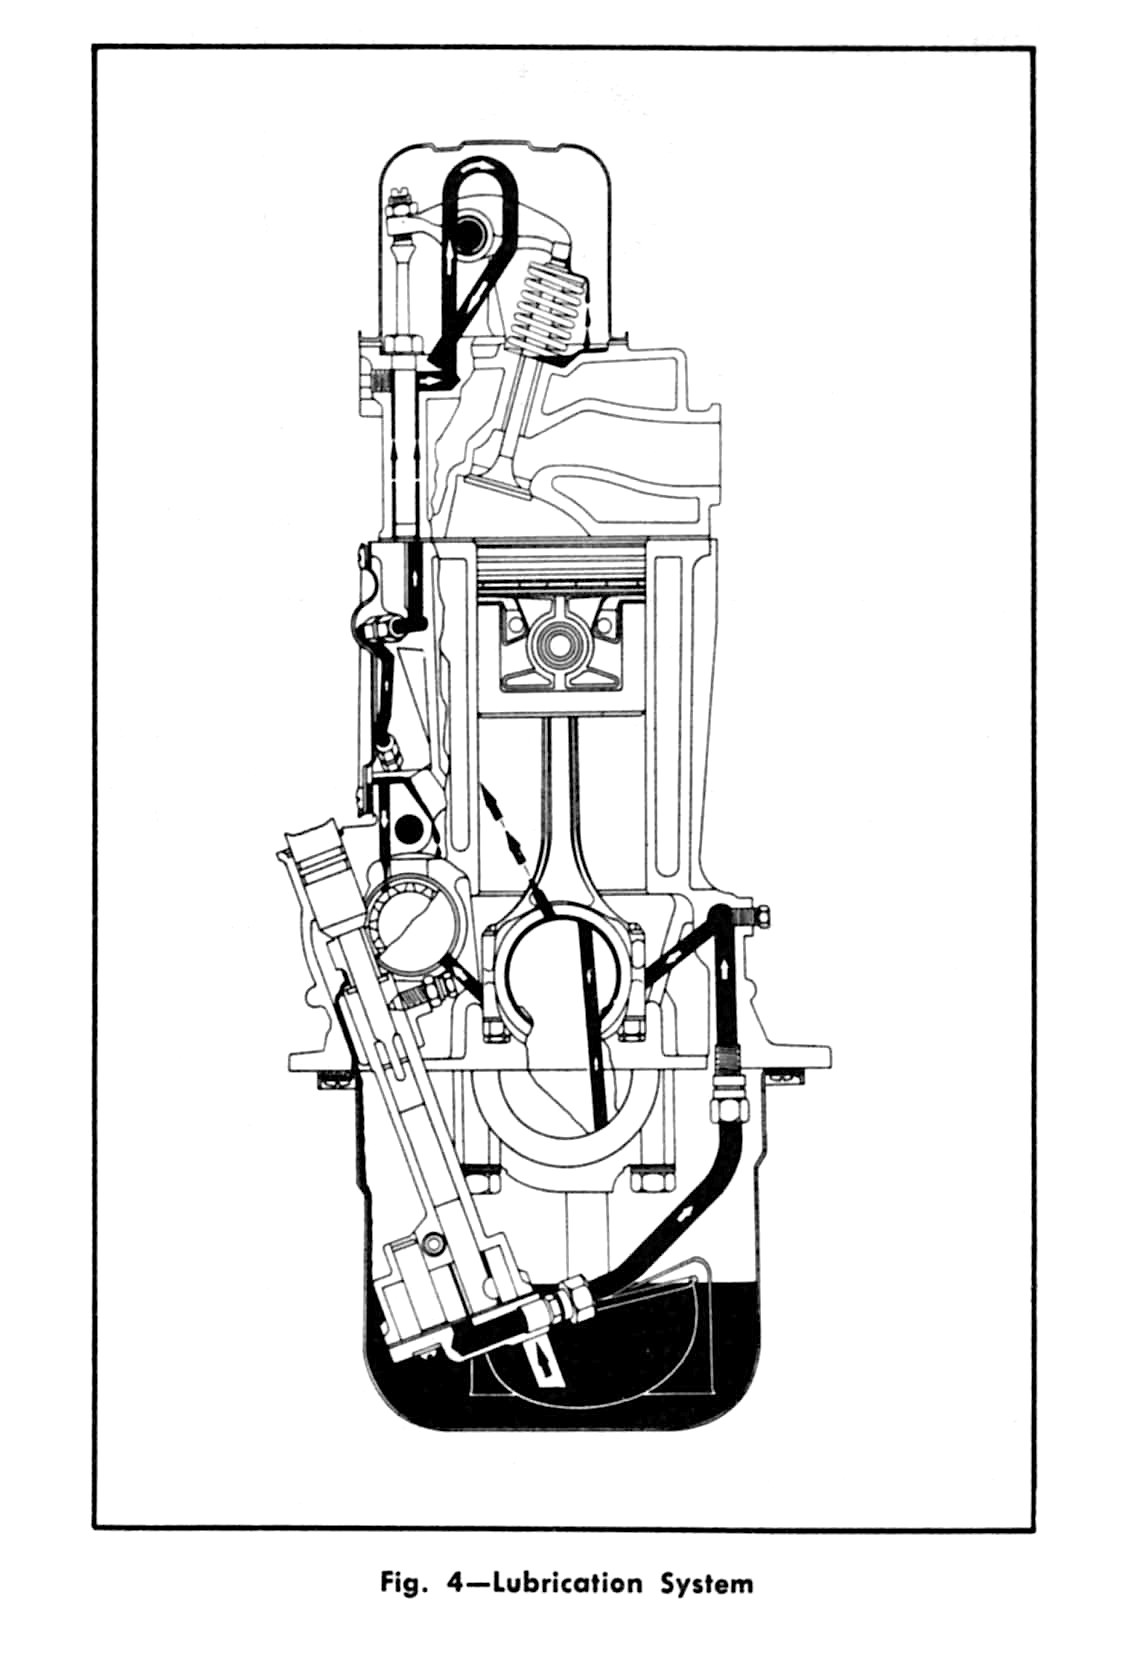 chevy 235 engine diagram outlet and switch wiring diagram